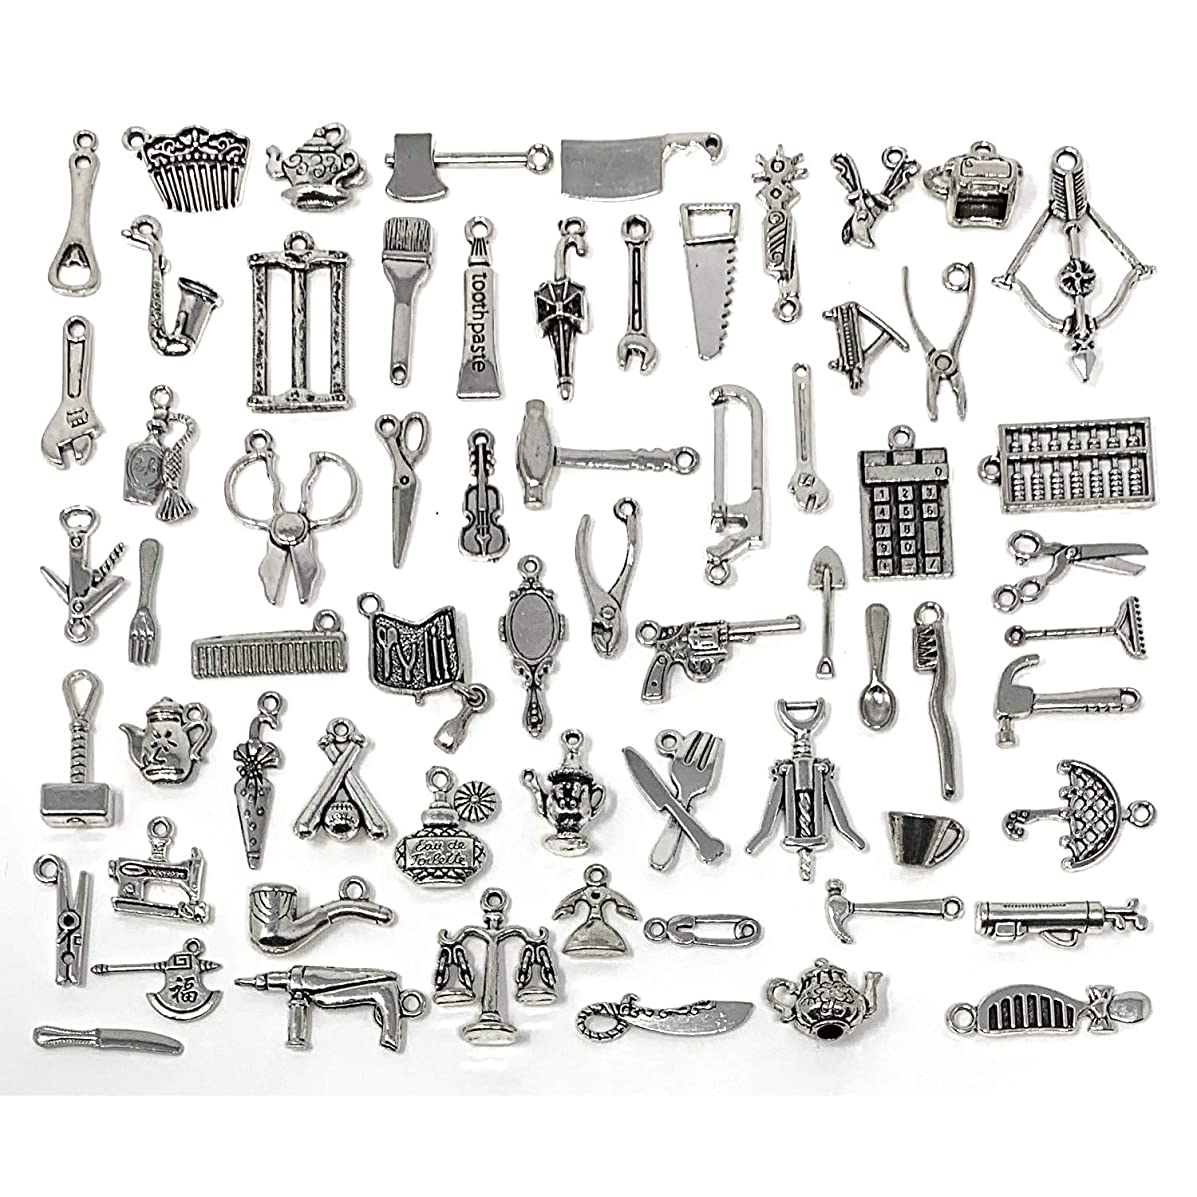 65PCS Home Tool Charms Collection, JIALEEY Wholesale Bulk Lots Antique Silver Tibetan Alloy Worker 3D Tools Charms Pendants DIY for Jewelry Making and Crafting